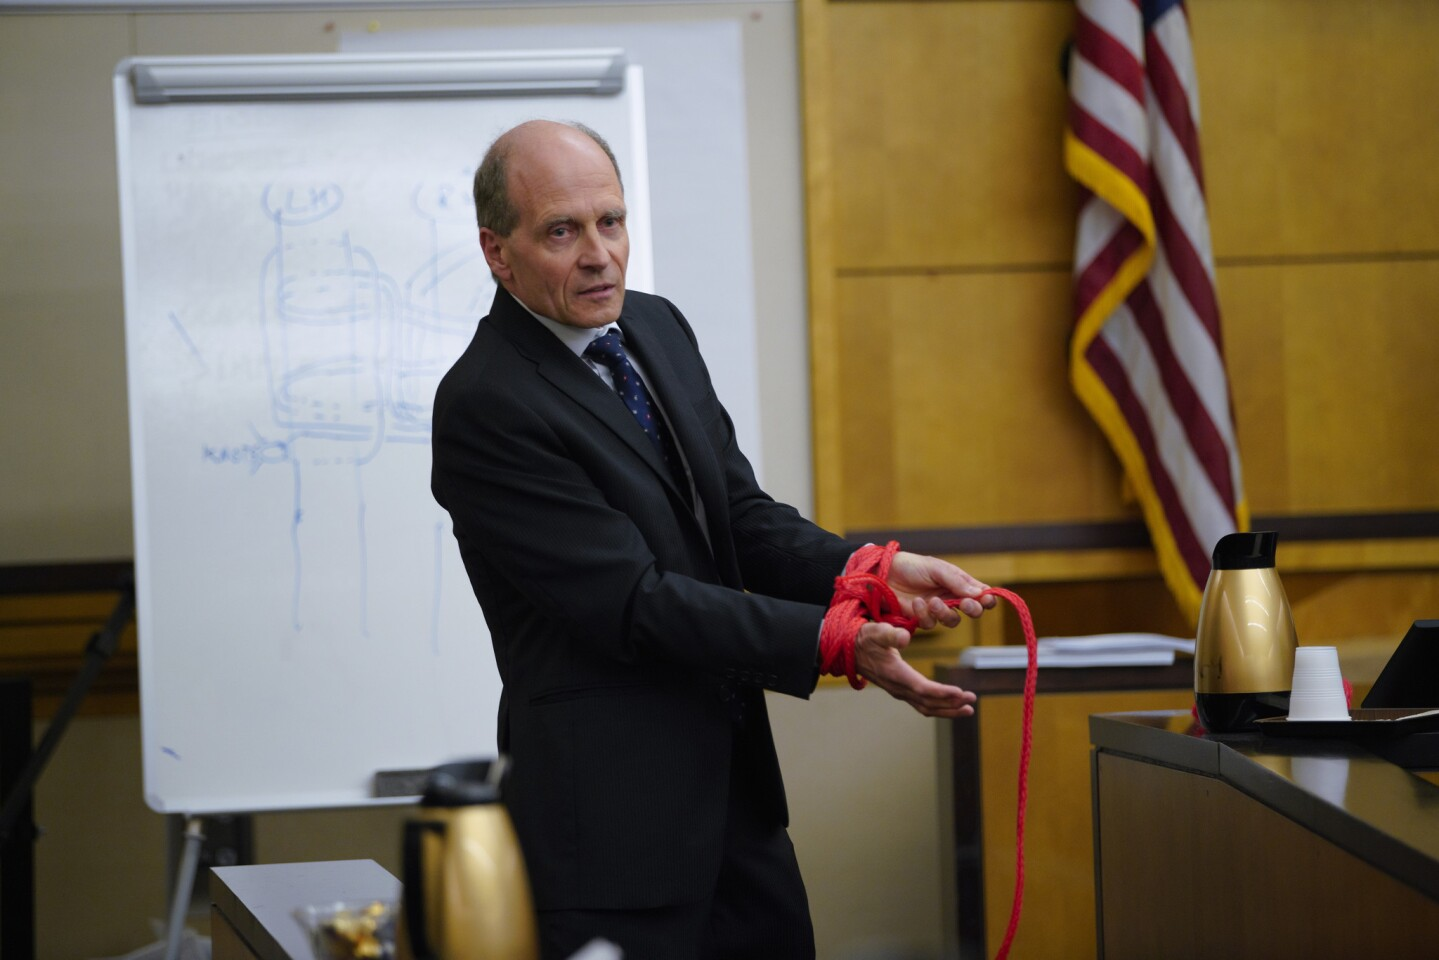 Plaintiff's attorney Keith Greer provided a rope to defense witness, Robert Chisnall similar to style and length that was used on Rebecca Zahau's asking him to demonstrate how she might have tied herself.